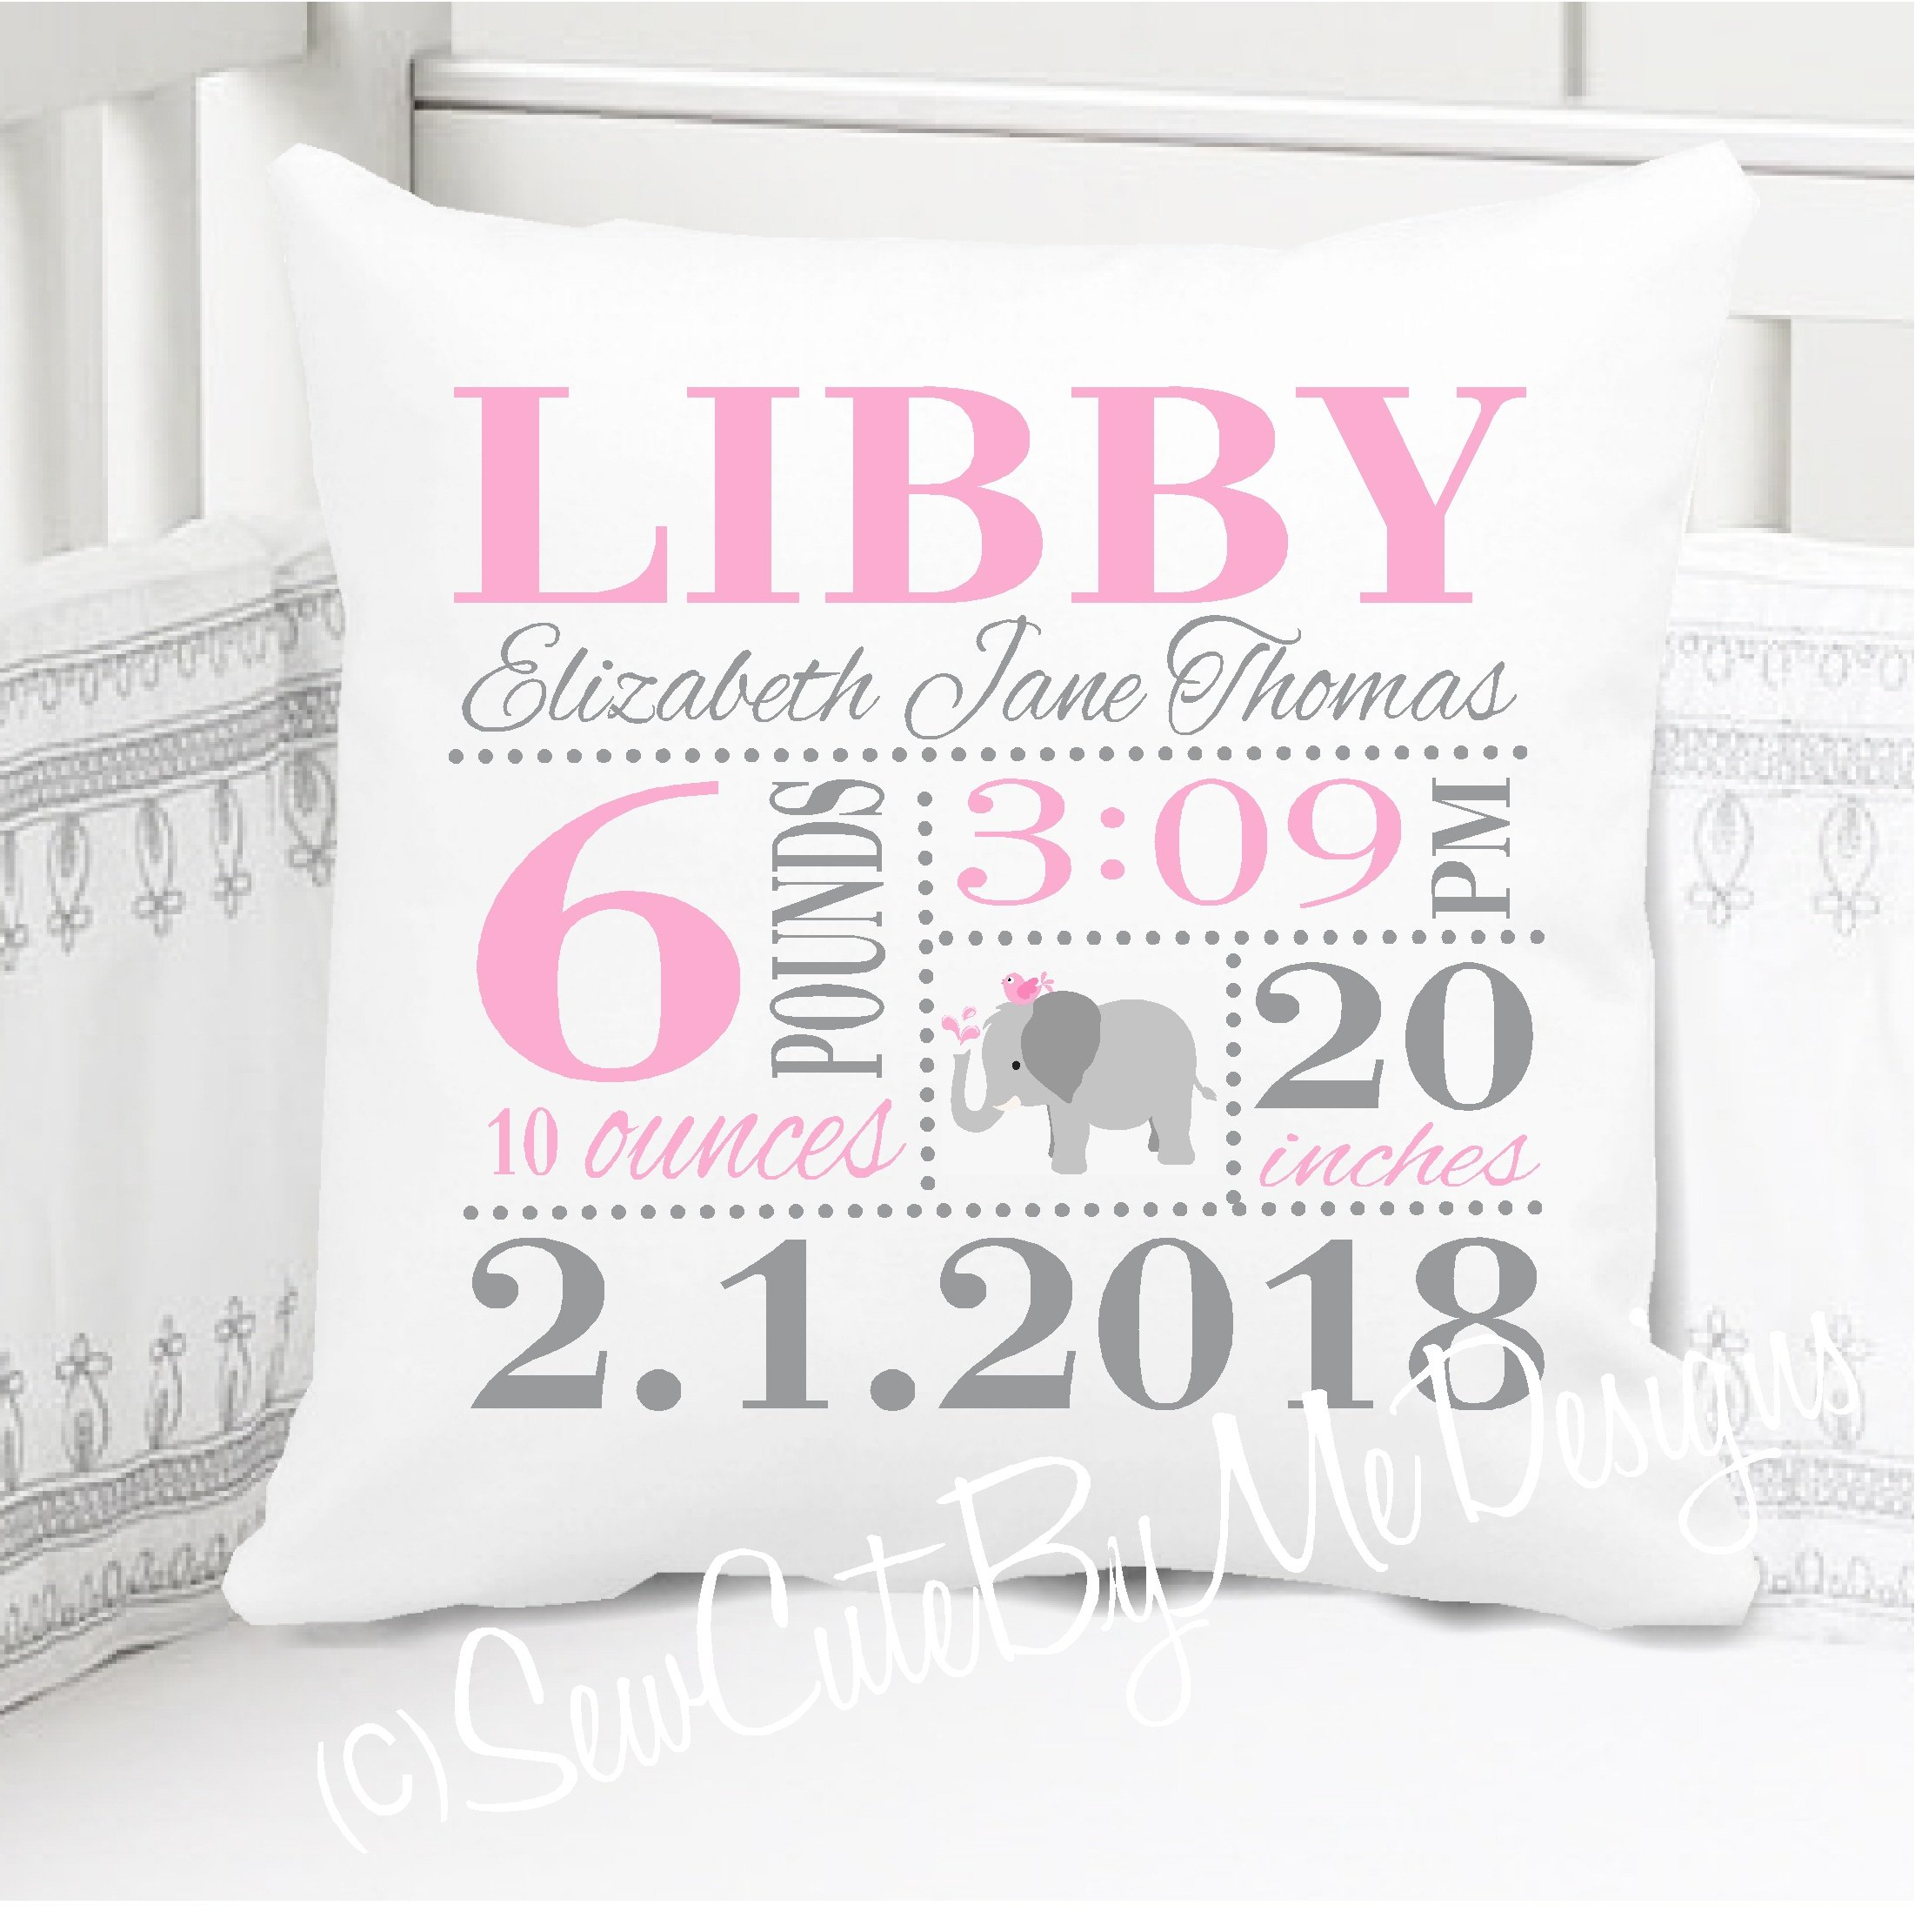 Sew Cute by Me Designs Original Birth Announcement Pillow for Baby Girls Elephant Nursery in Pink and Grey - Includes Personalized Pillowcase and Pillow Insert 14''x14'' or 16''x16''